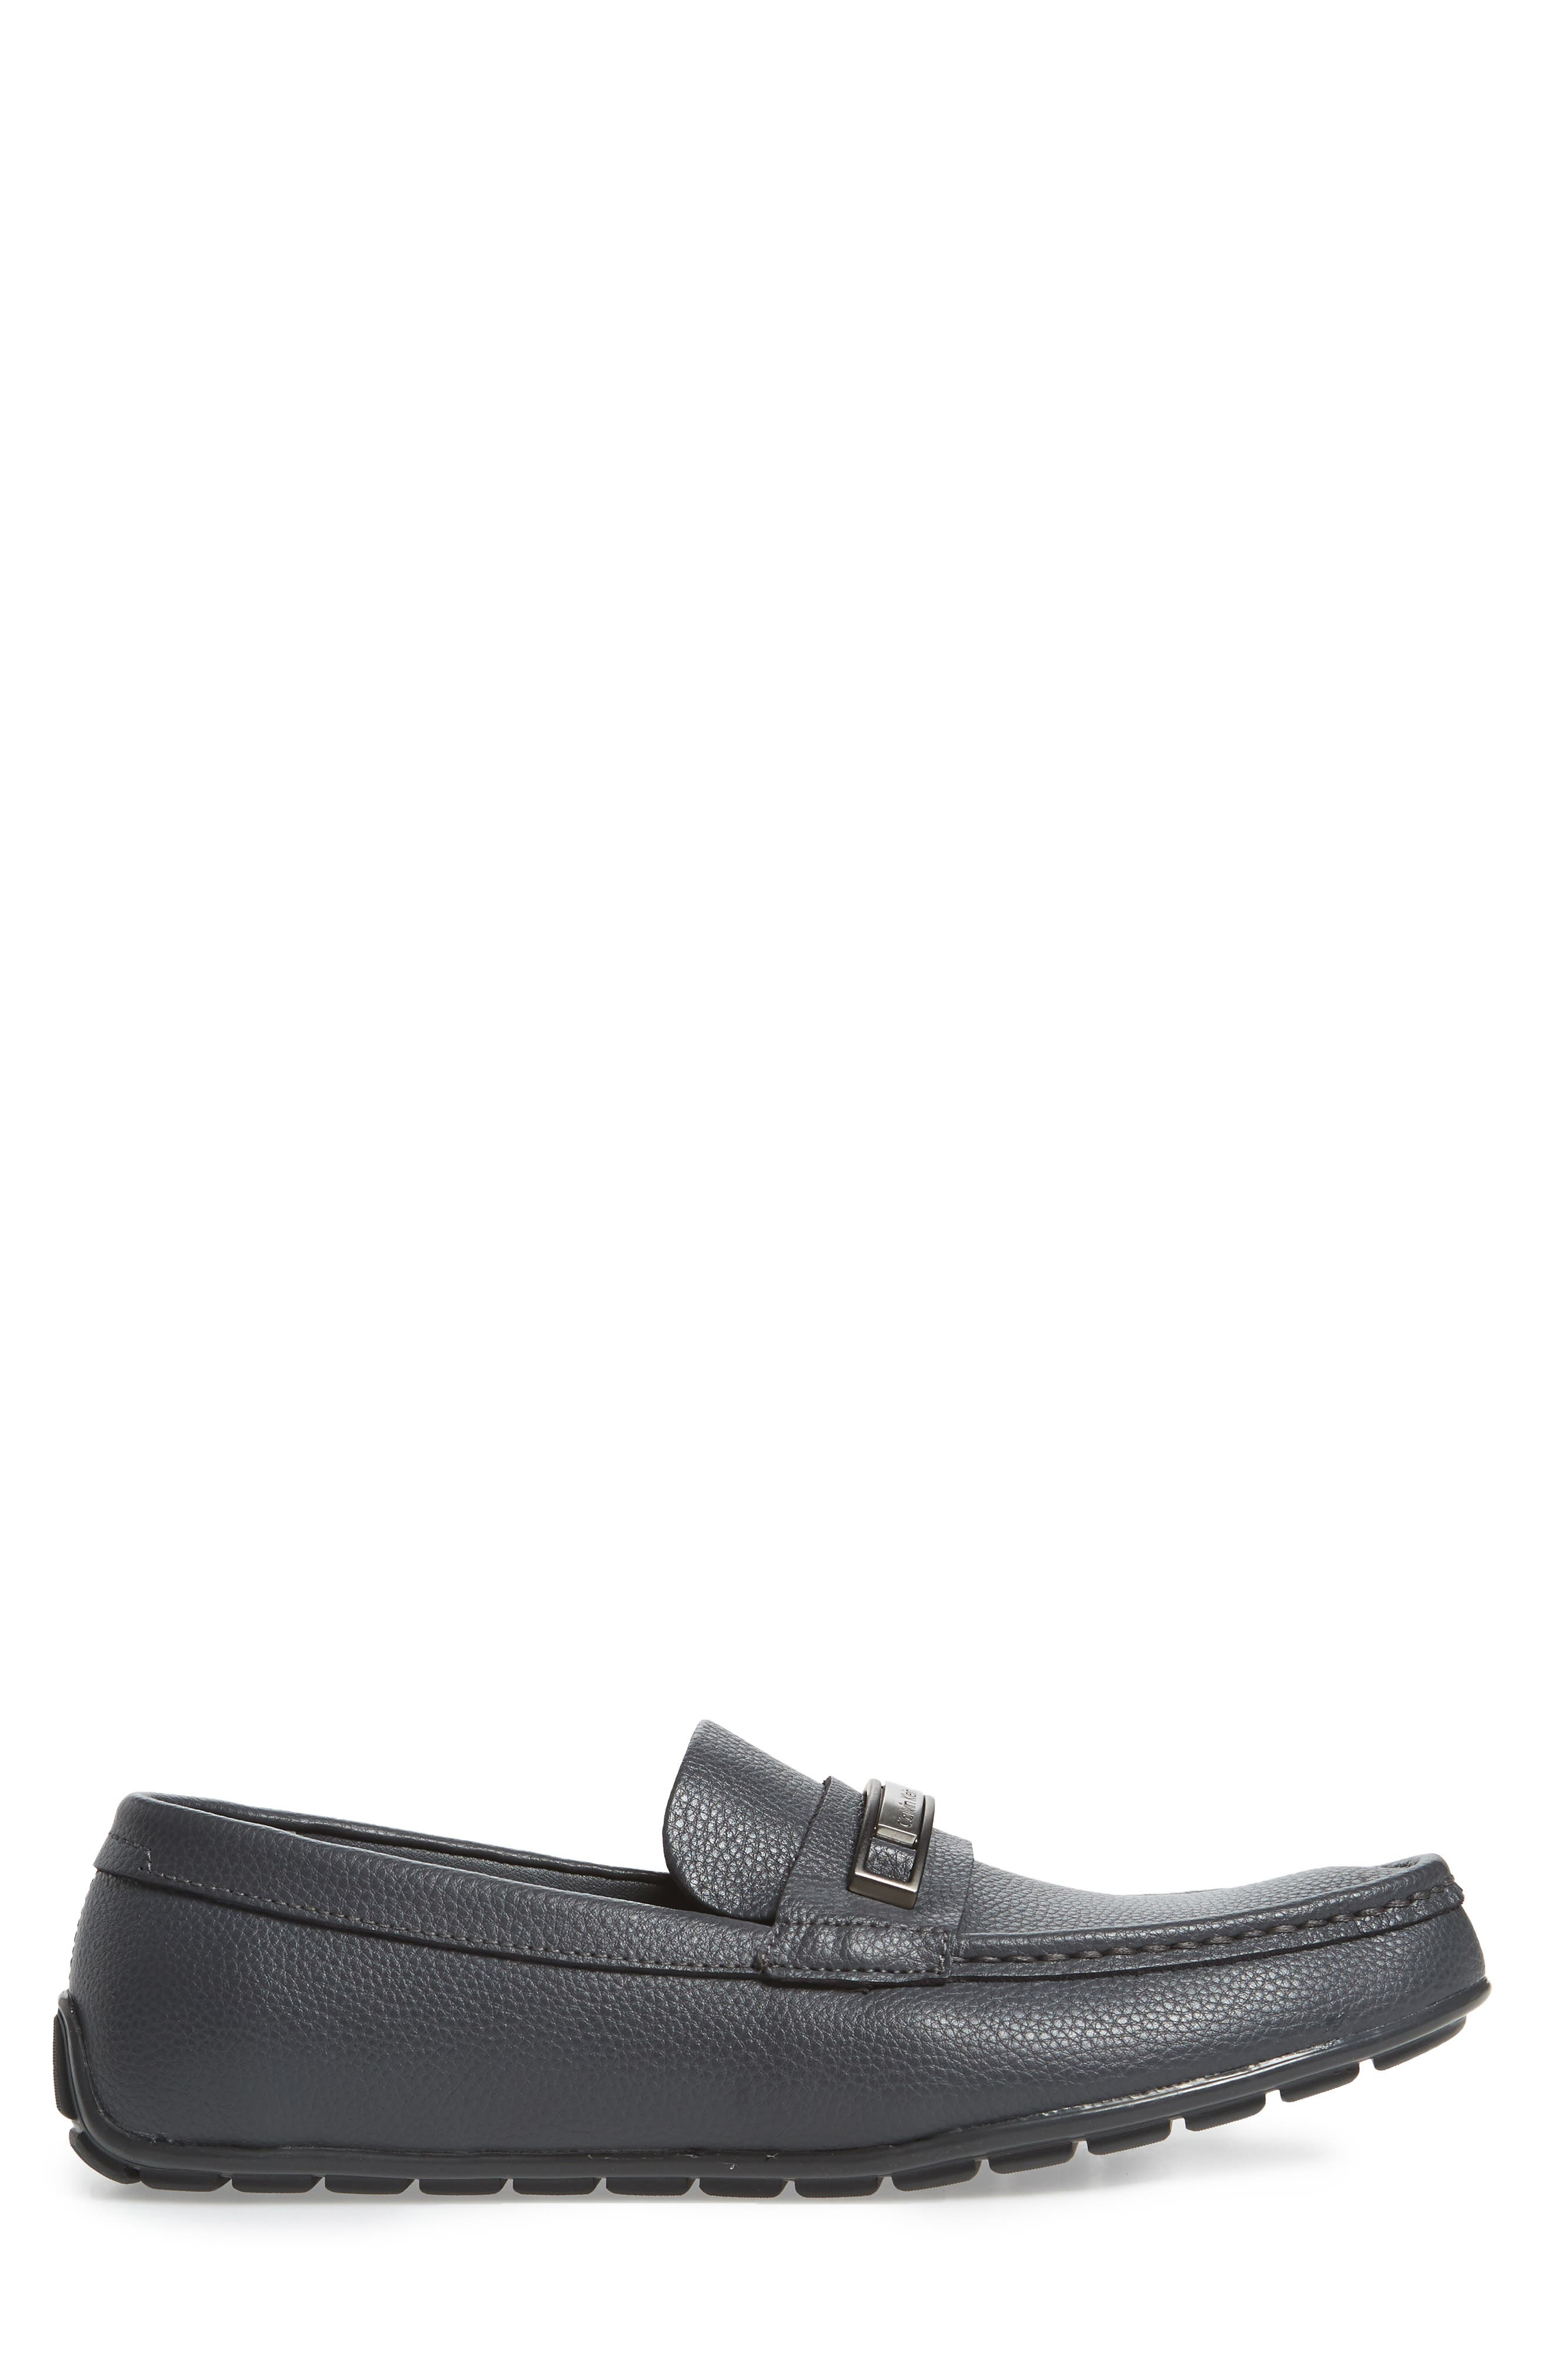 Irving Driving Loafer,                             Alternate thumbnail 10, color,